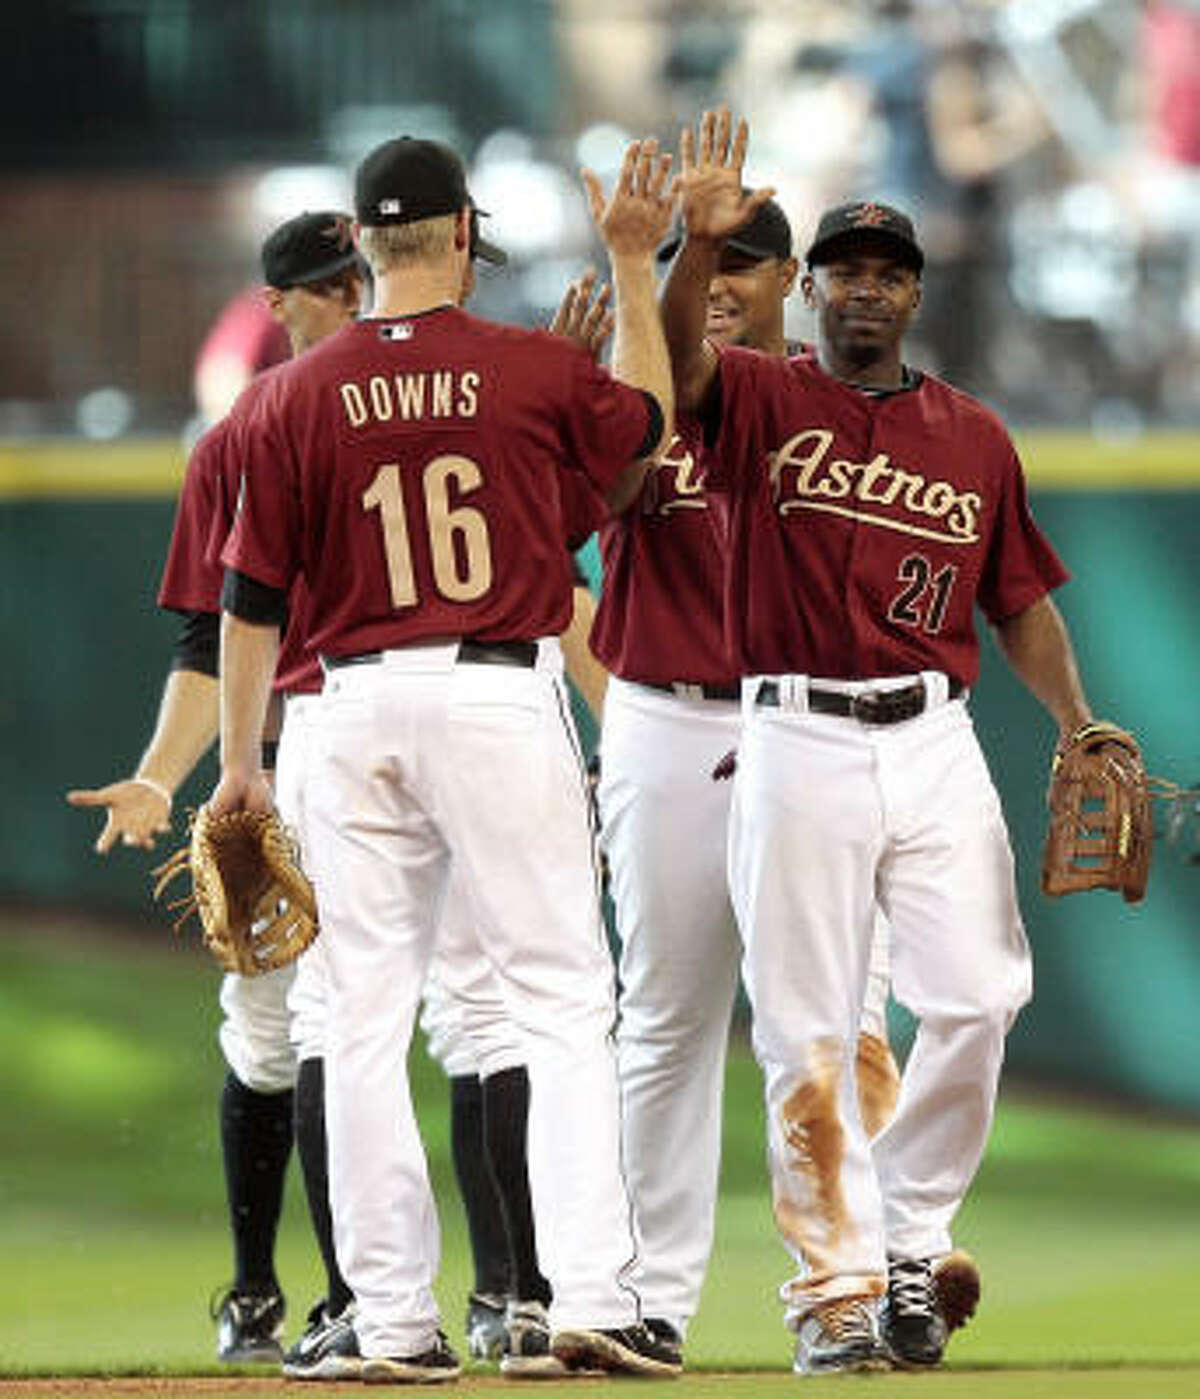 Astros center fielder Michael Bourn (21) high-fives teammate Matt Downs (16) after the final out in the ninth inning.